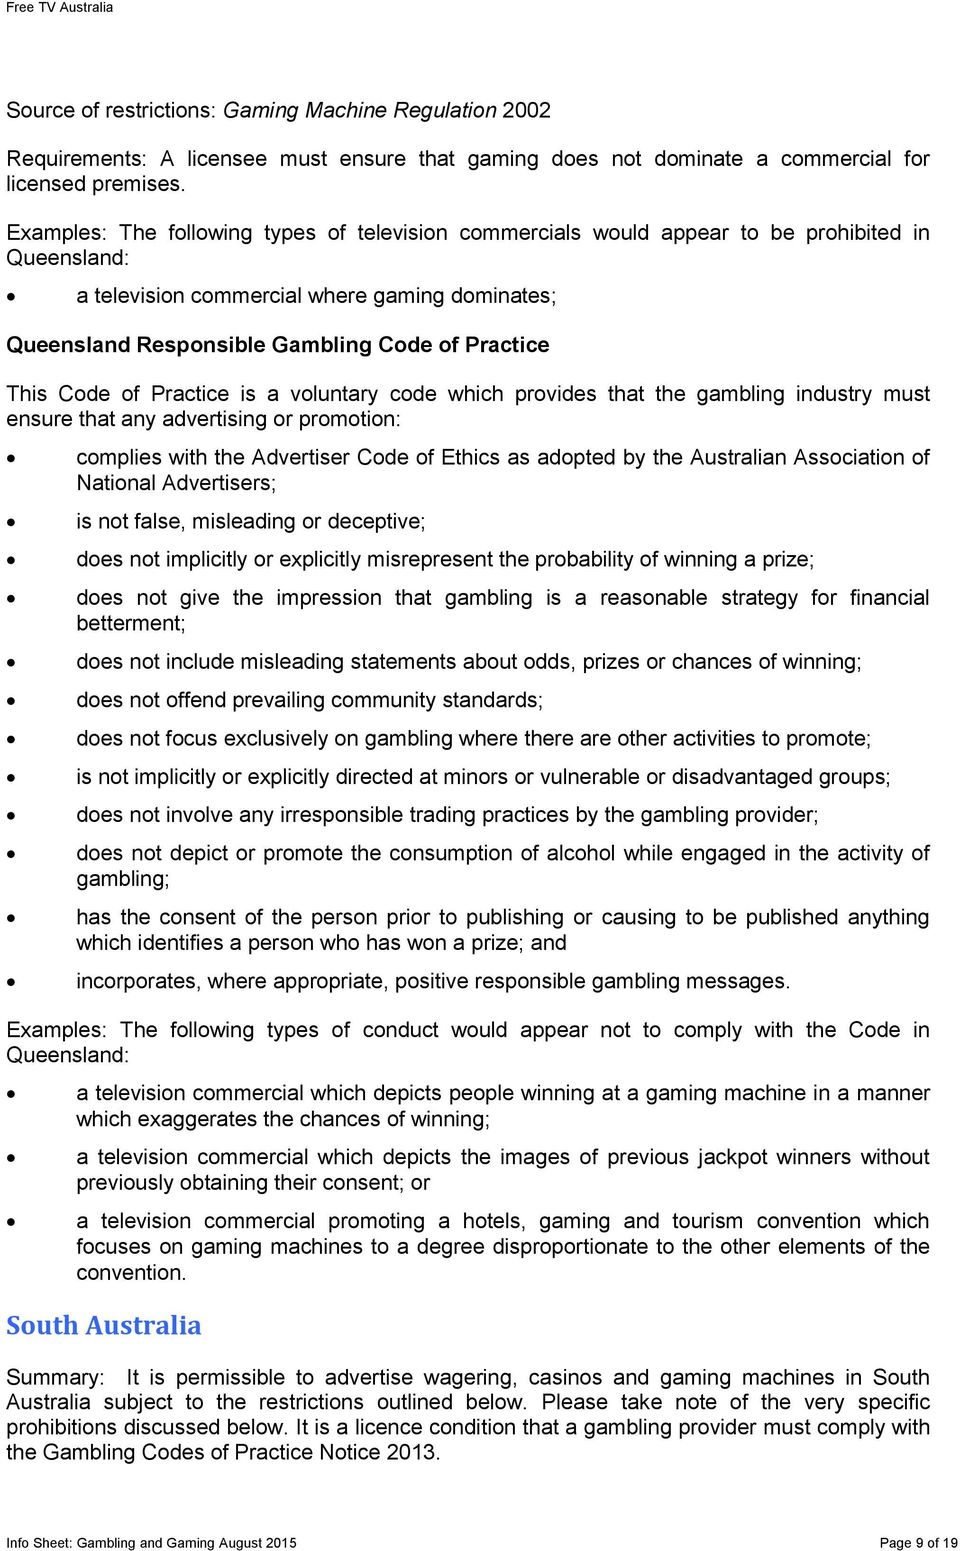 This Code of Practice is a voluntary code which provides that the gambling industry must ensure that any advertising or promotion: complies with the Advertiser Code of Ethics as adopted by the